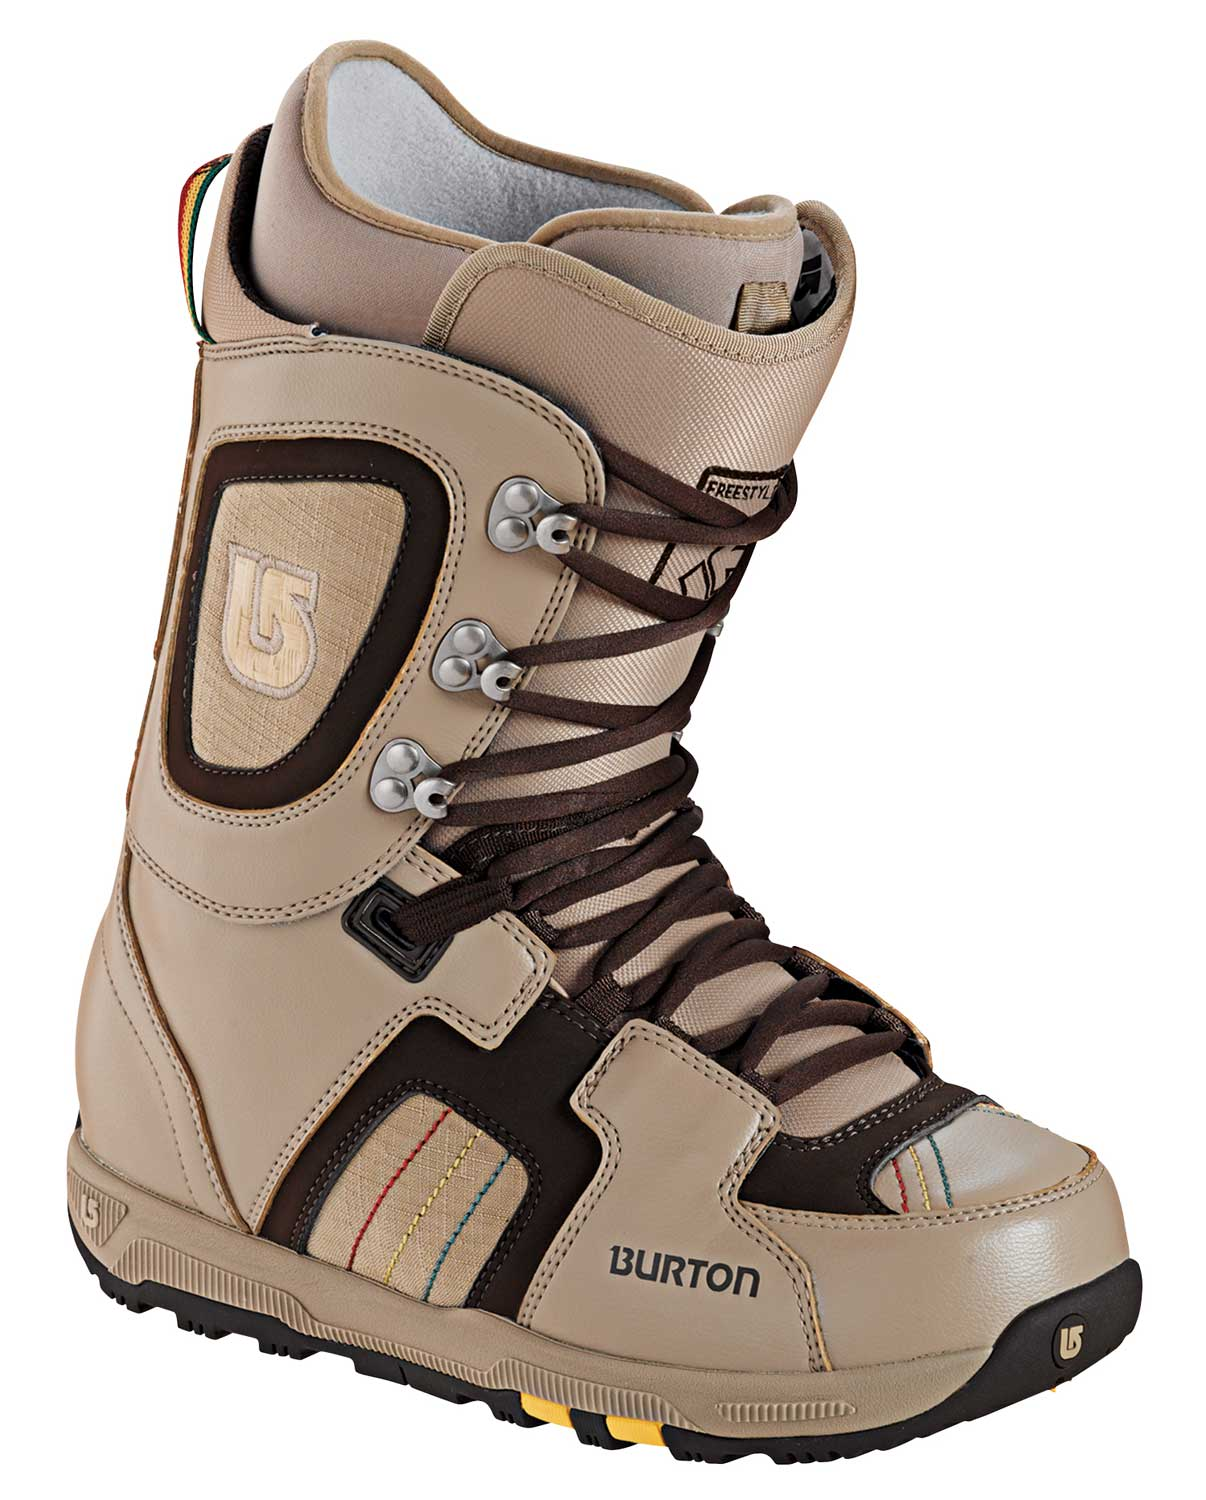 On Sale Burton Freestyle Snowboard Boots Up To 80% Off